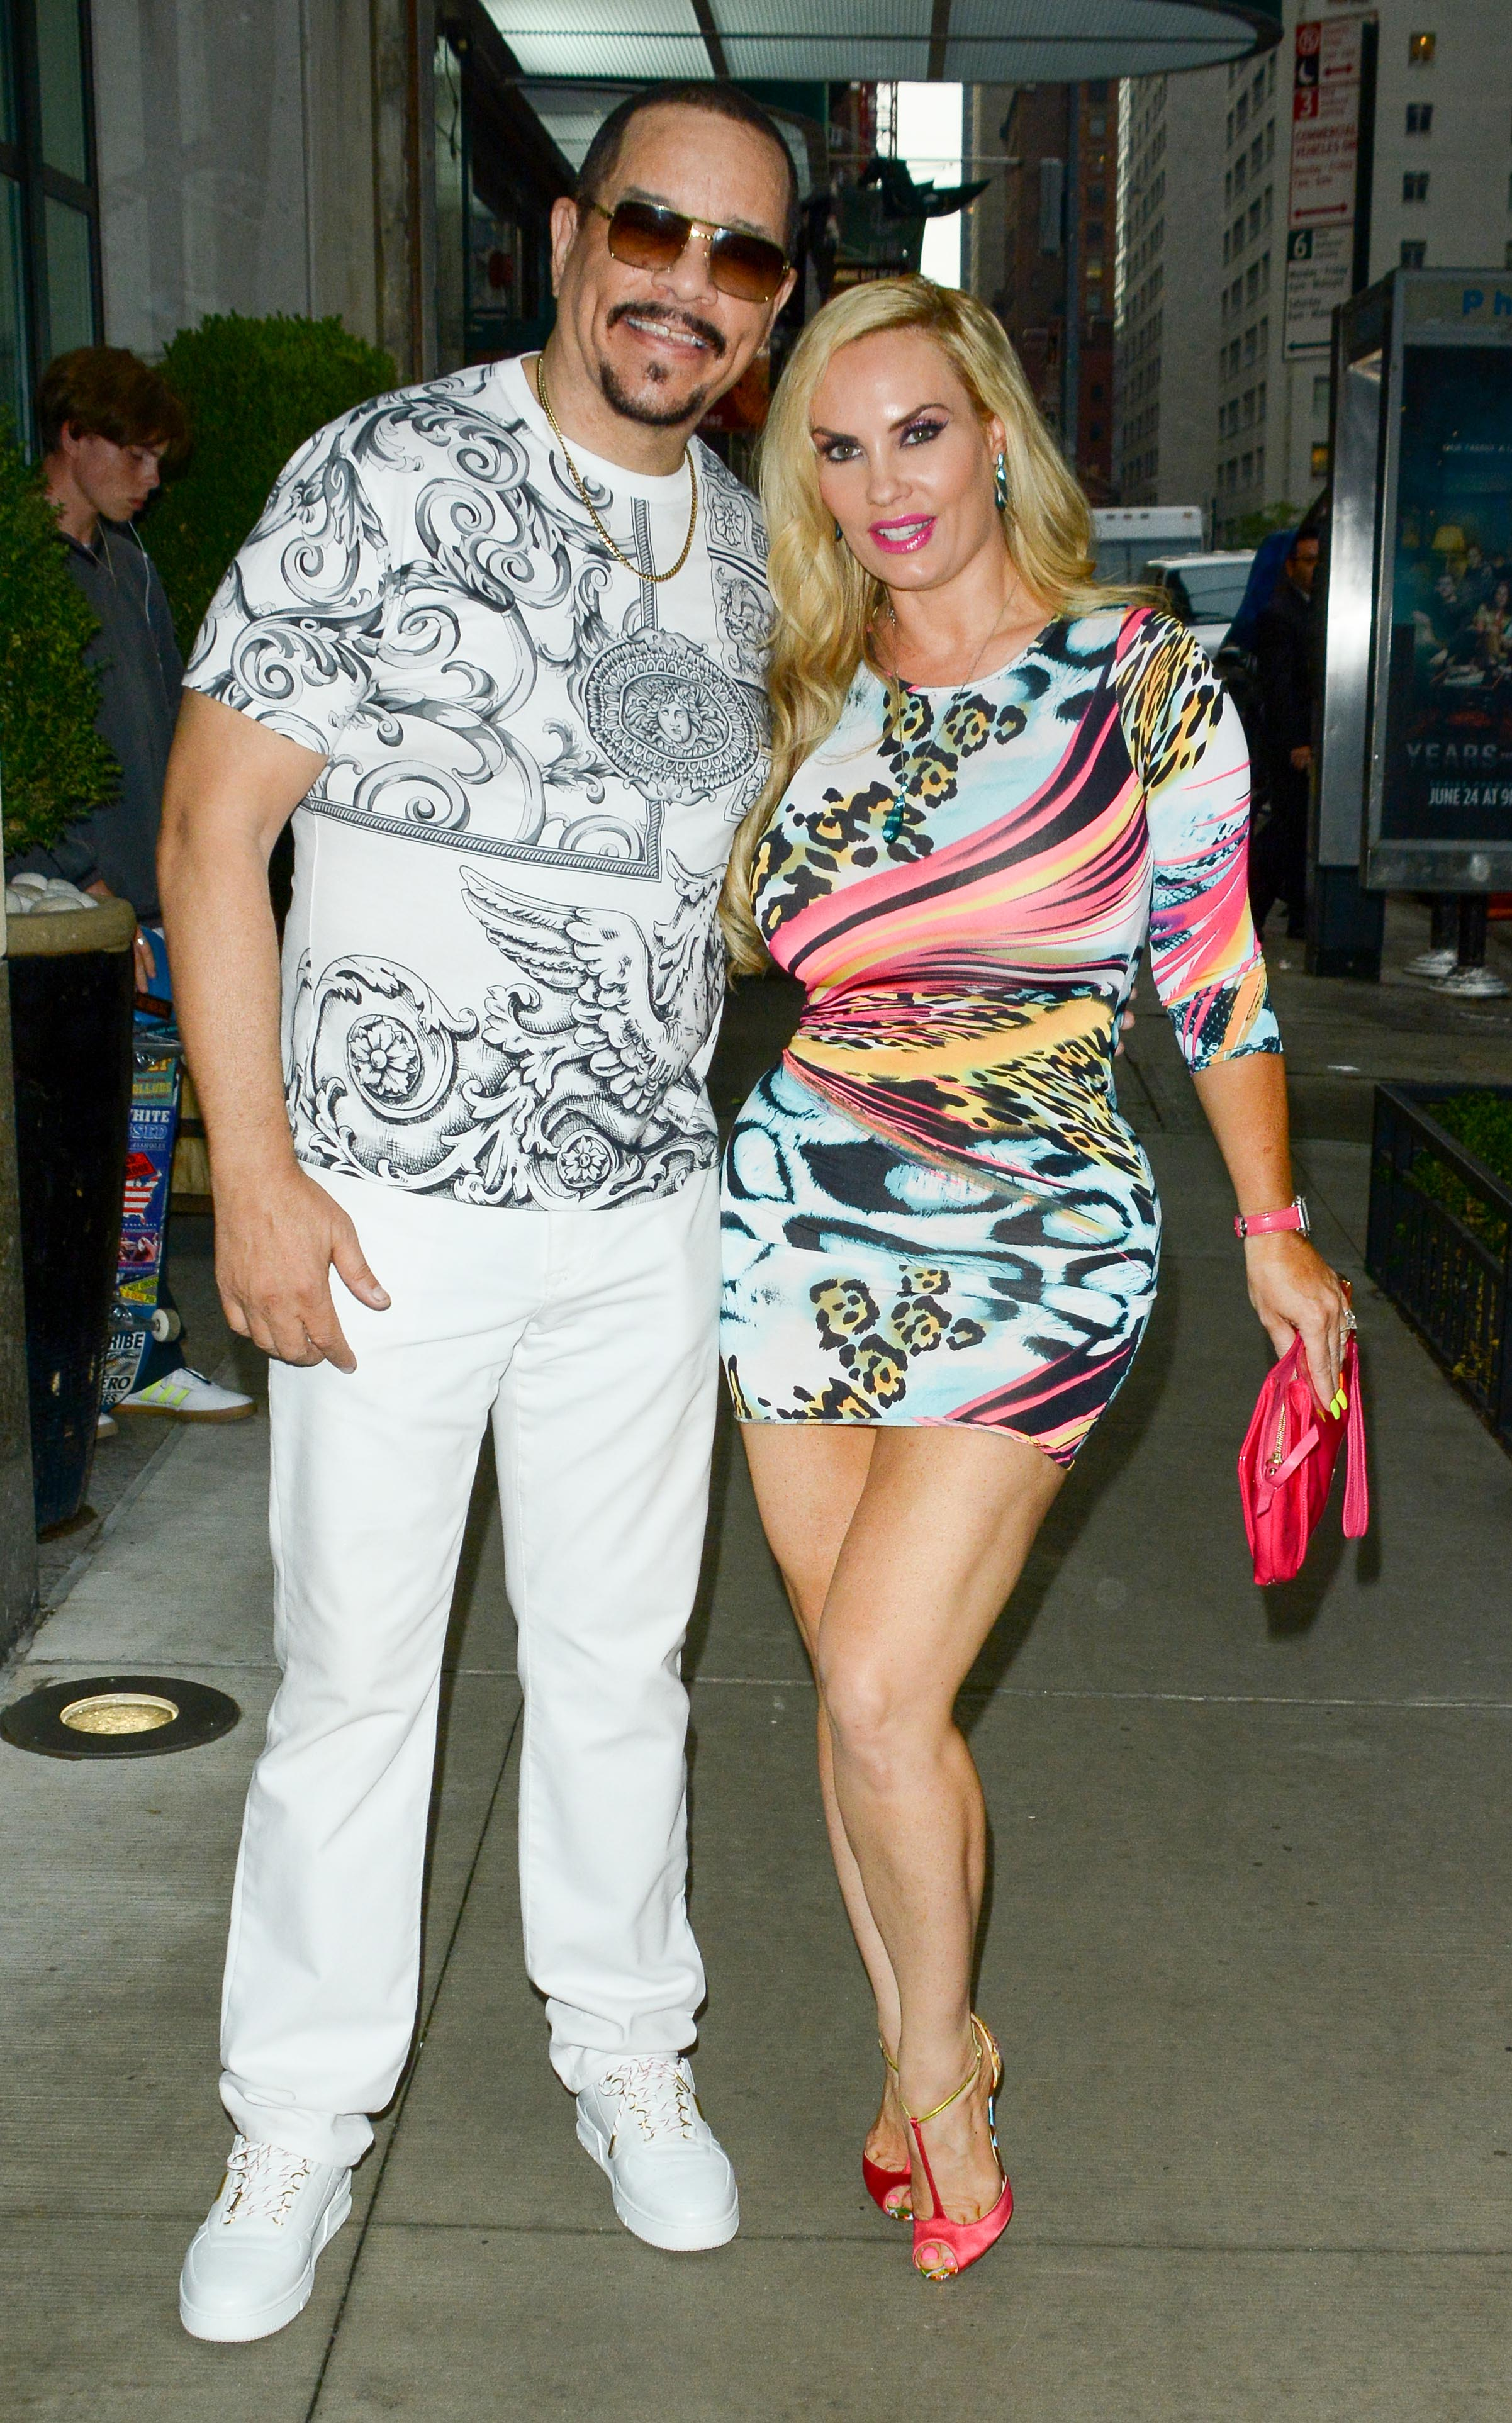 Ice-T and his wife Coco Austin pictured on August 13, 2019 in New York City. | Photo: Getty Images